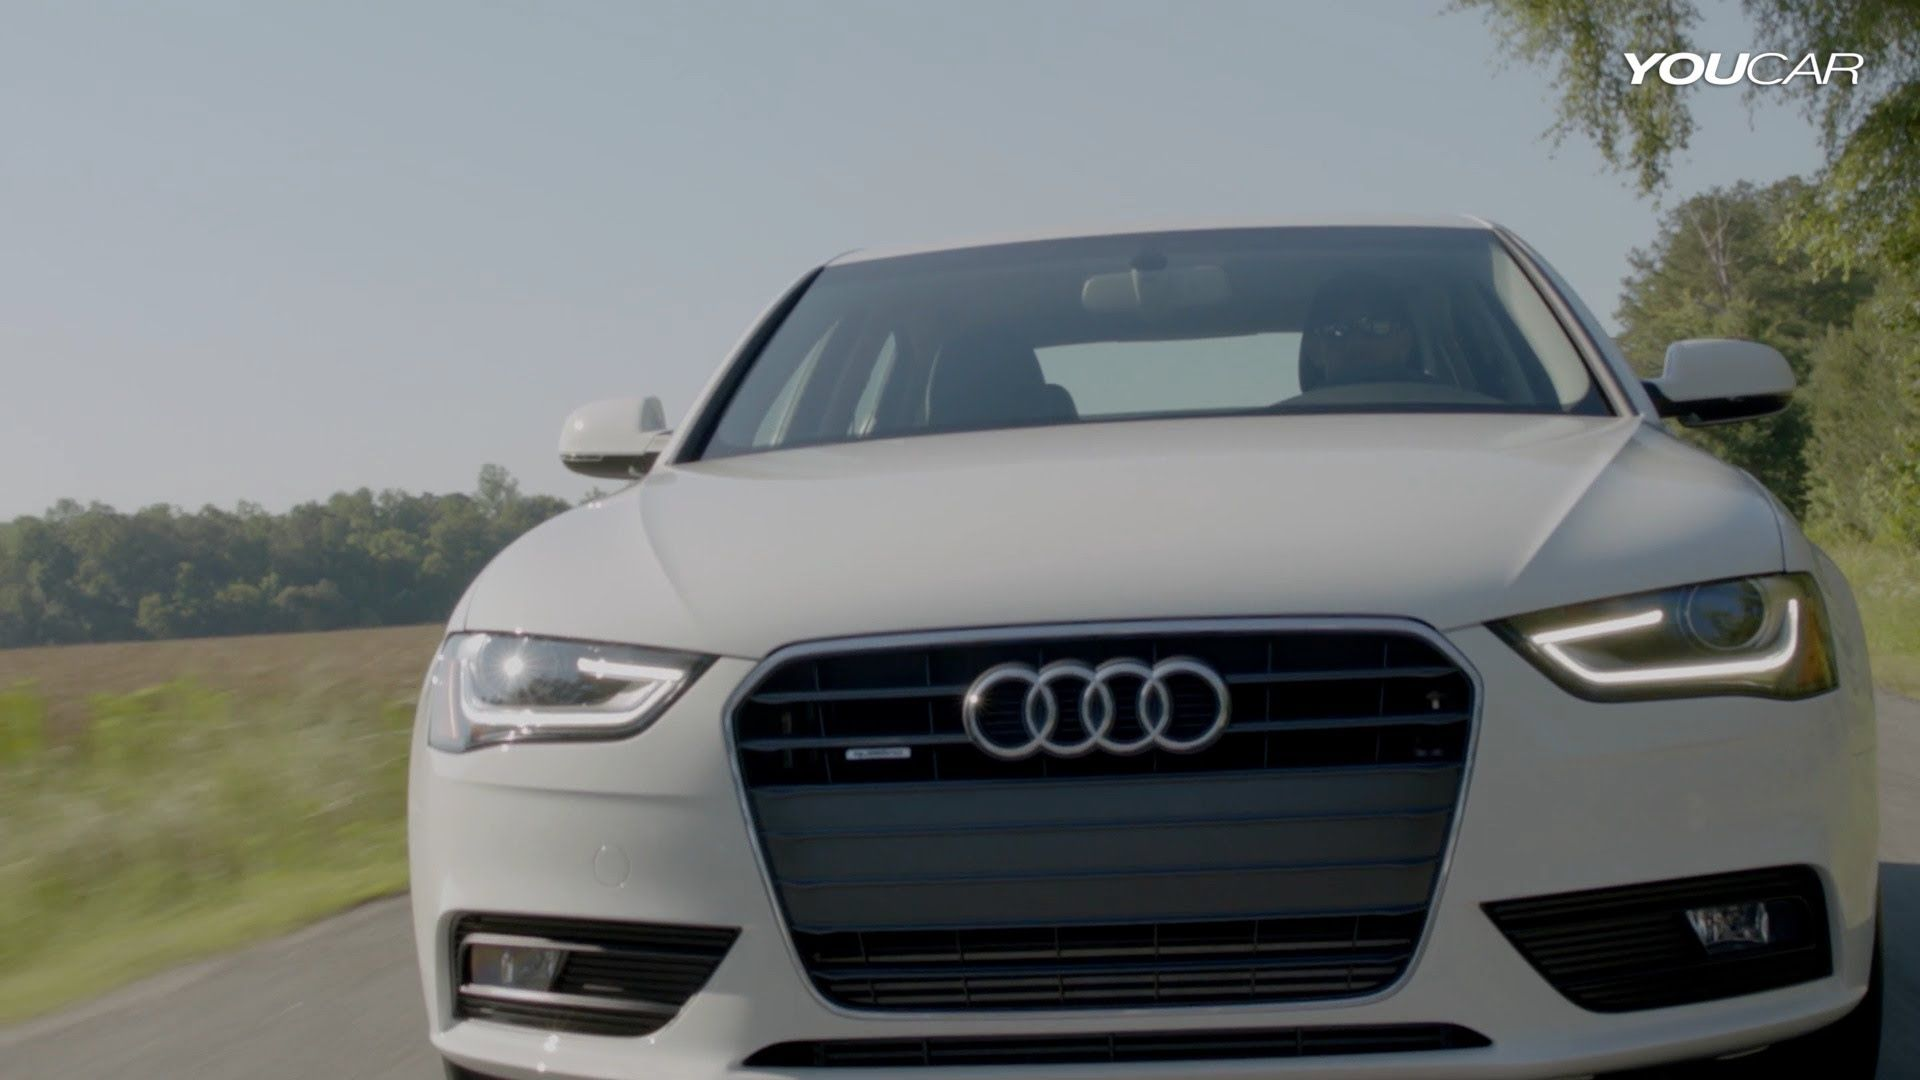 2013 Audi A4 quattro [US Version] Cars Worldwide